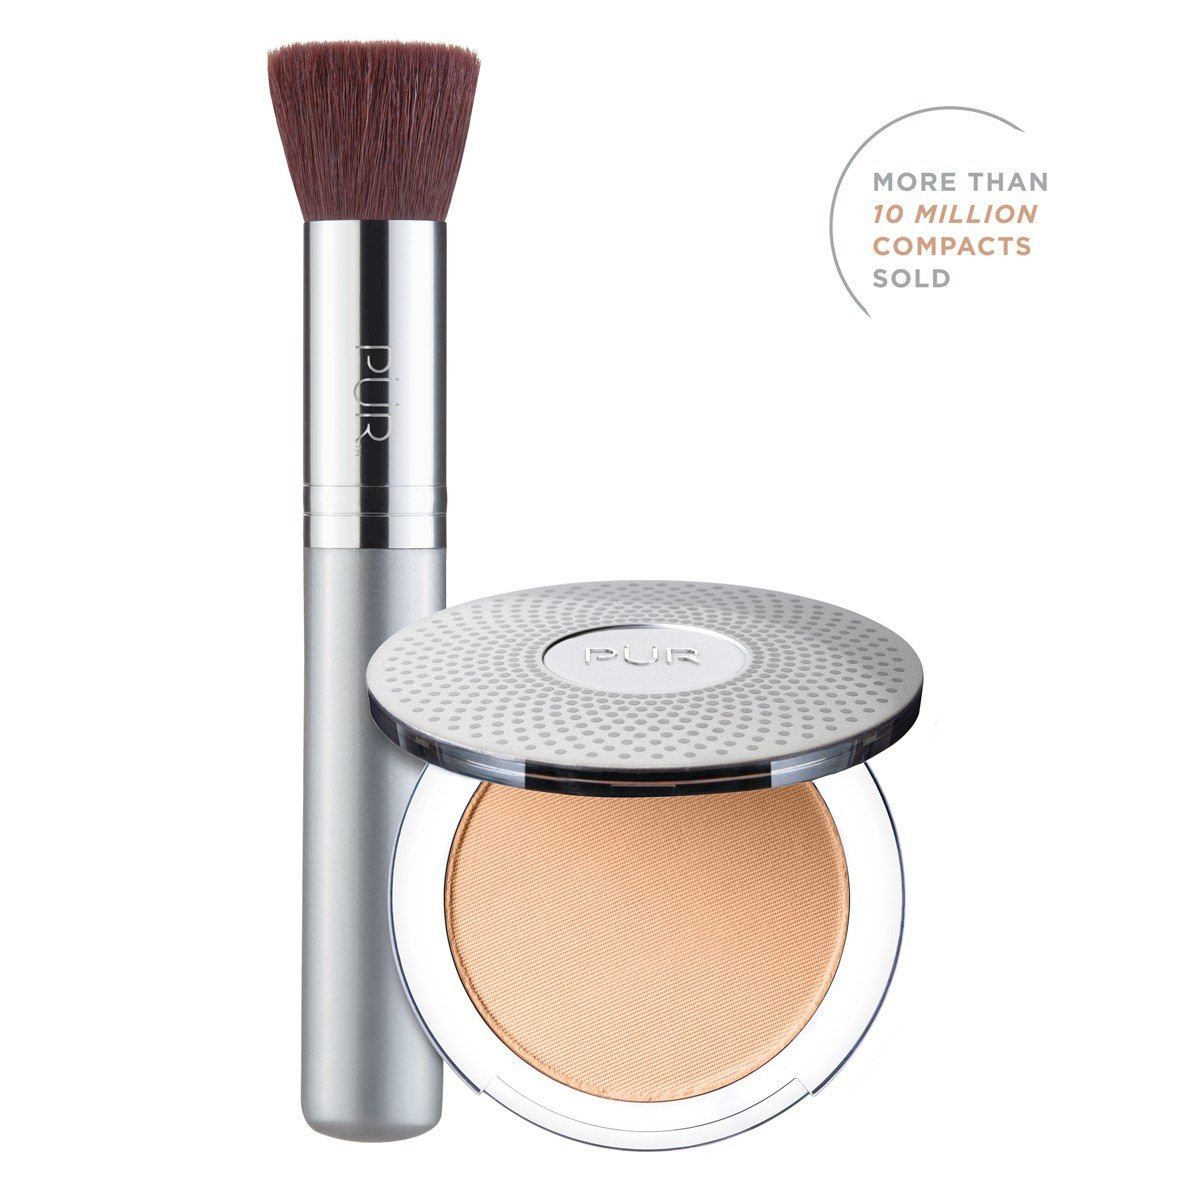 TRY PÜR! 4-in-1 Pressed Mineral Makeup and Brush Kit in Golden Medium